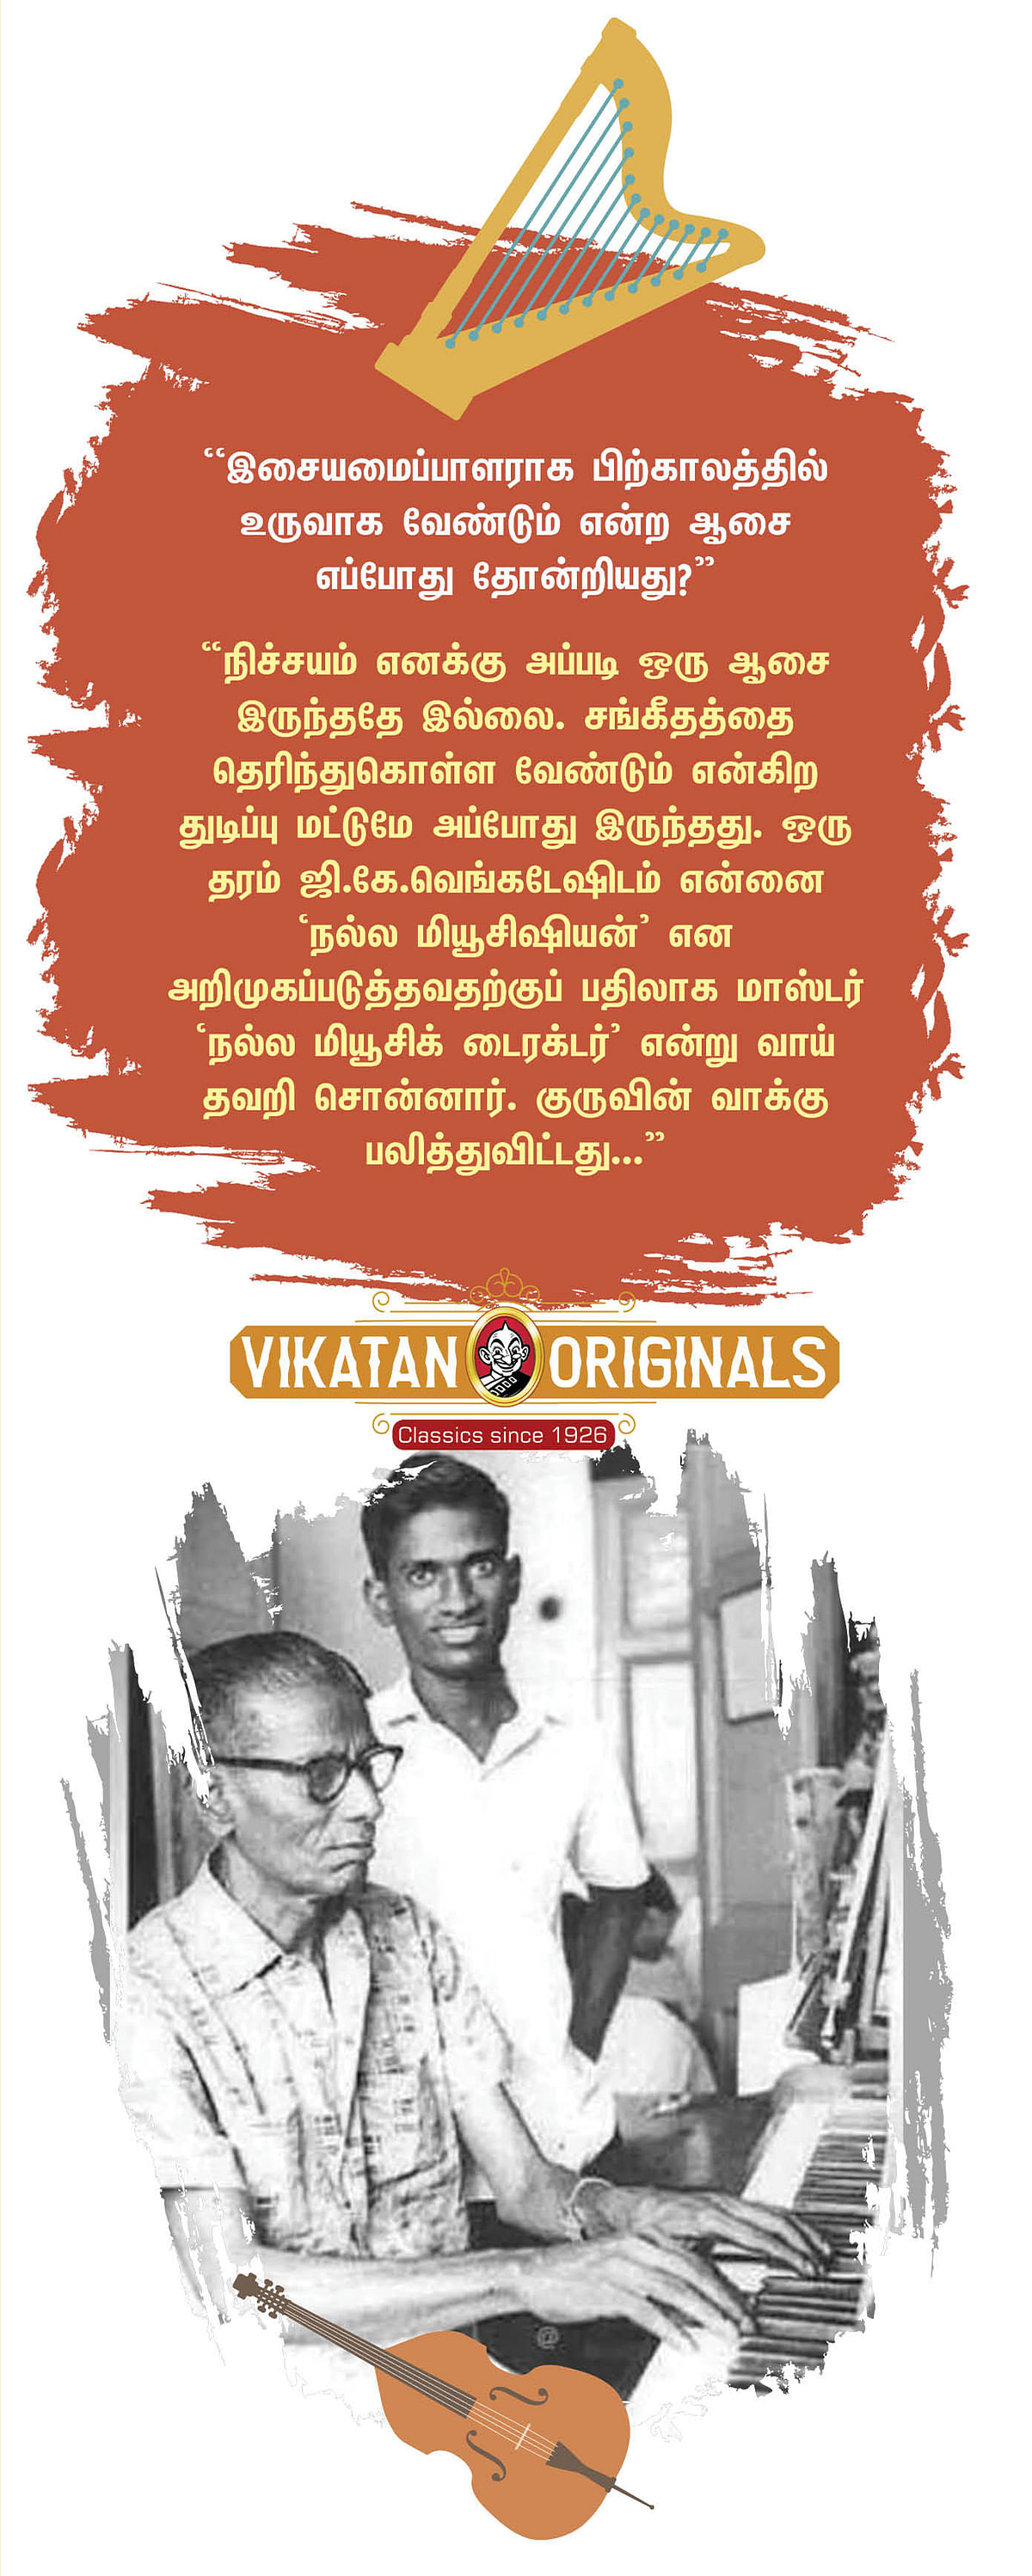 #VikatanOriginals